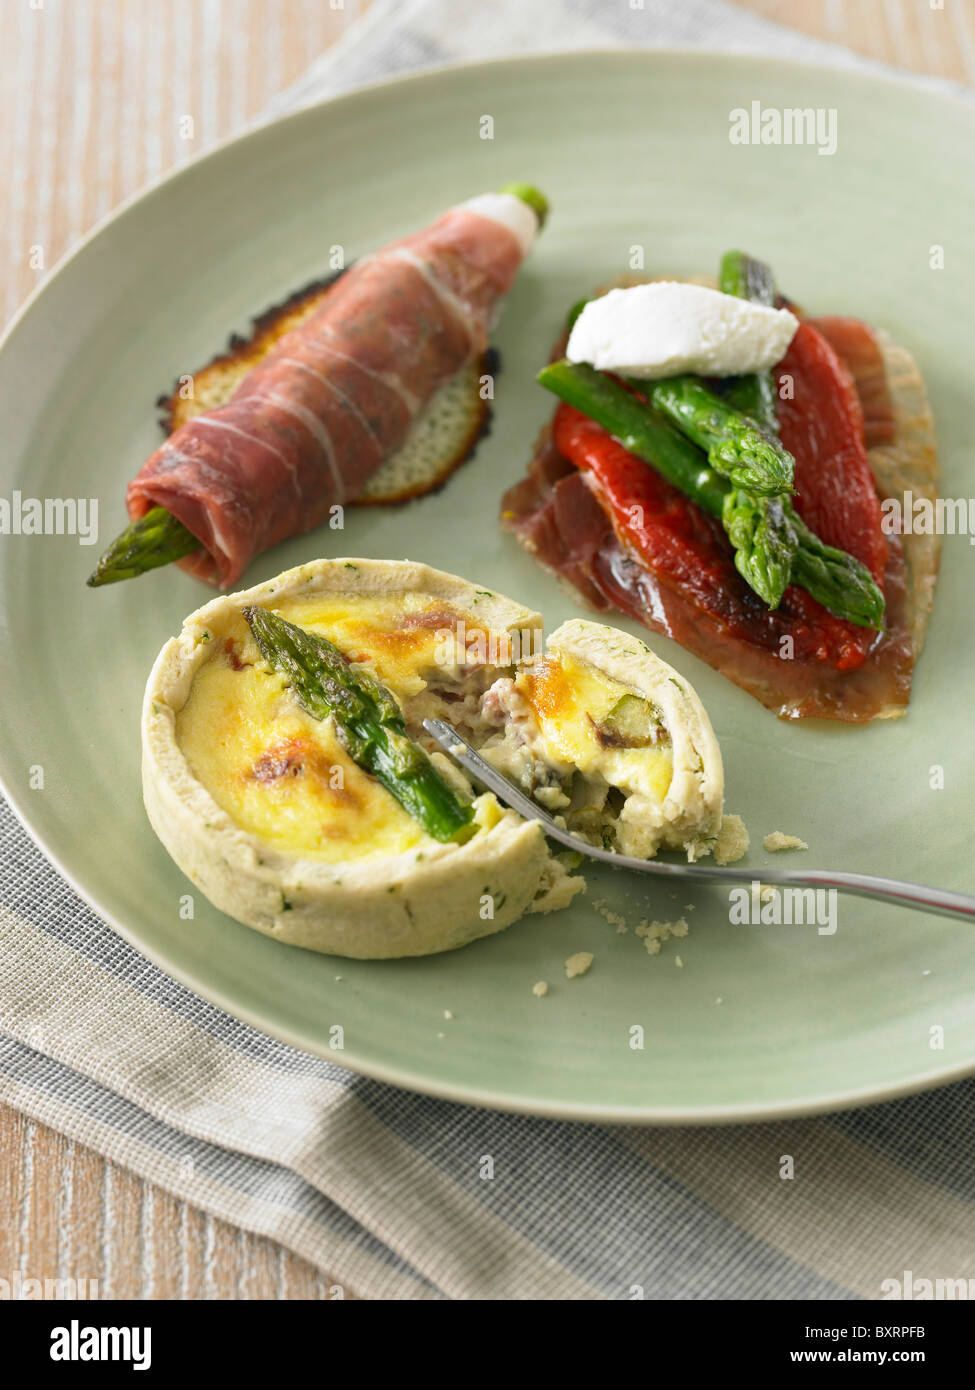 Trio of starters on plate, asparagus wrapped in smoked parma ham, asparagus tart, and parma ham with red peppers - Stock Image